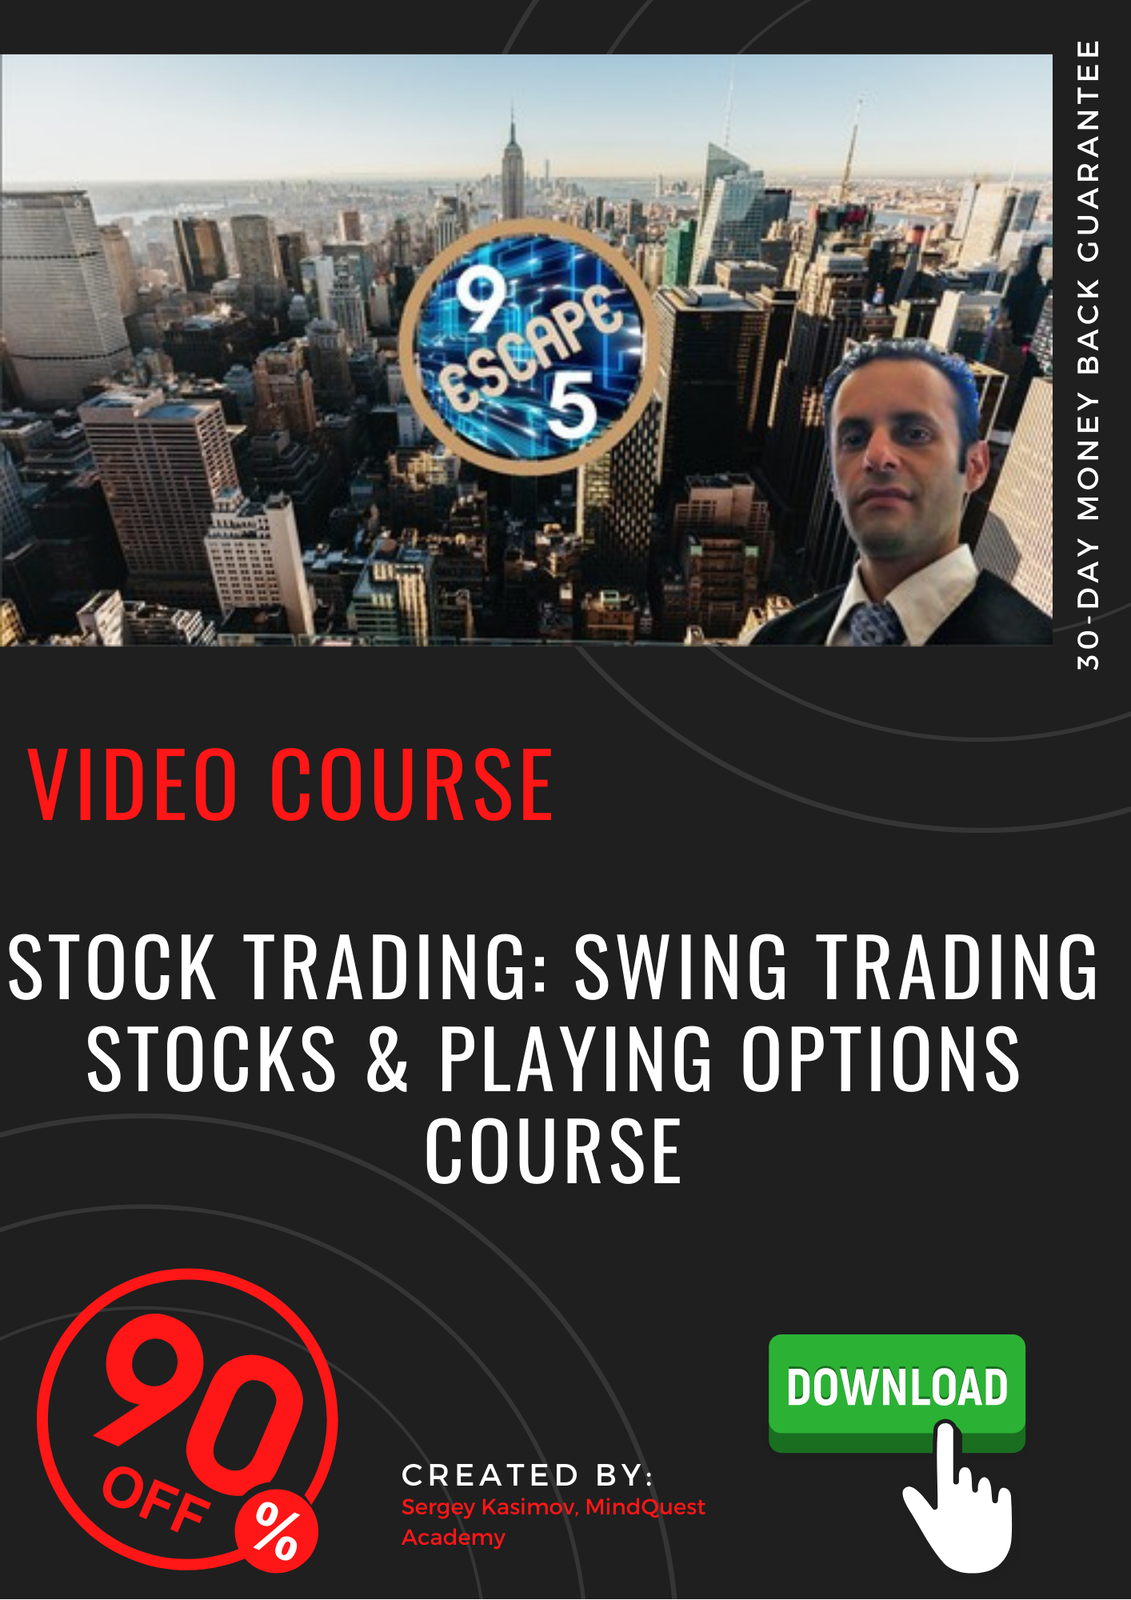 Stock Trading: Swing Trading Stocks & Playing Options Course